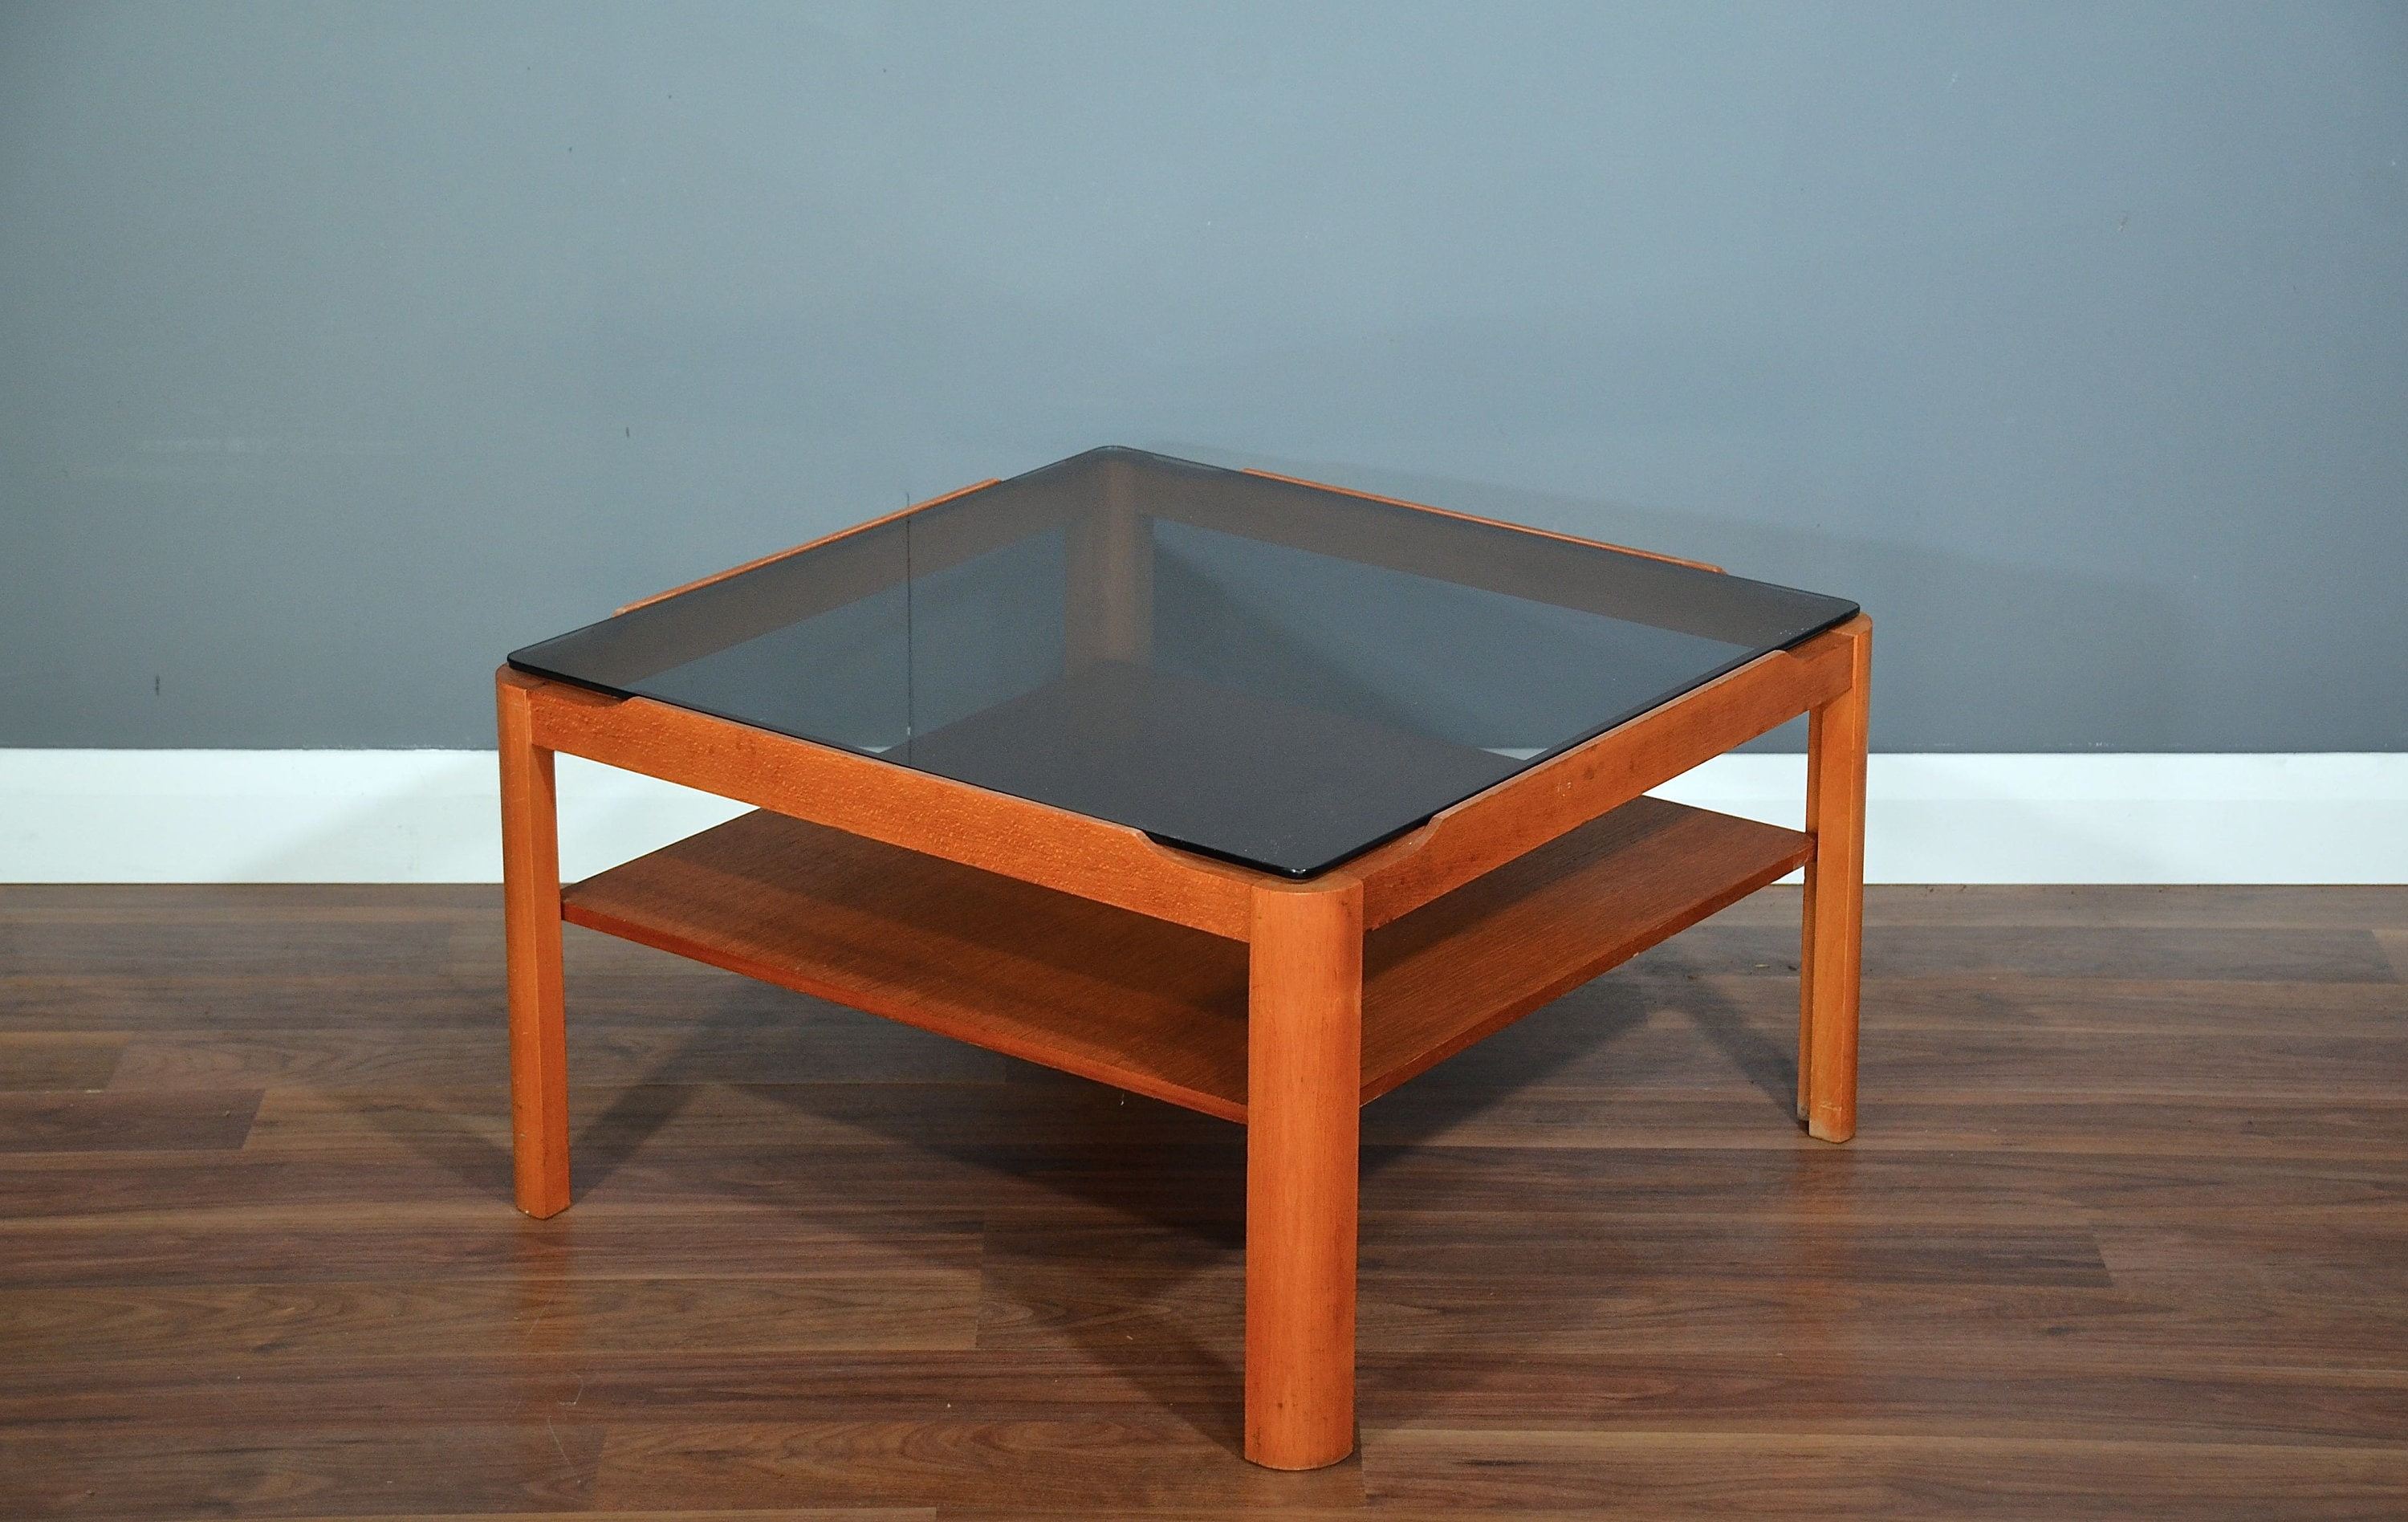 Teak Couchtisch Danish Vintage Midcentury Two Tier Teak And Smoked Glass Coffee Table Delivery Danish Retro Style